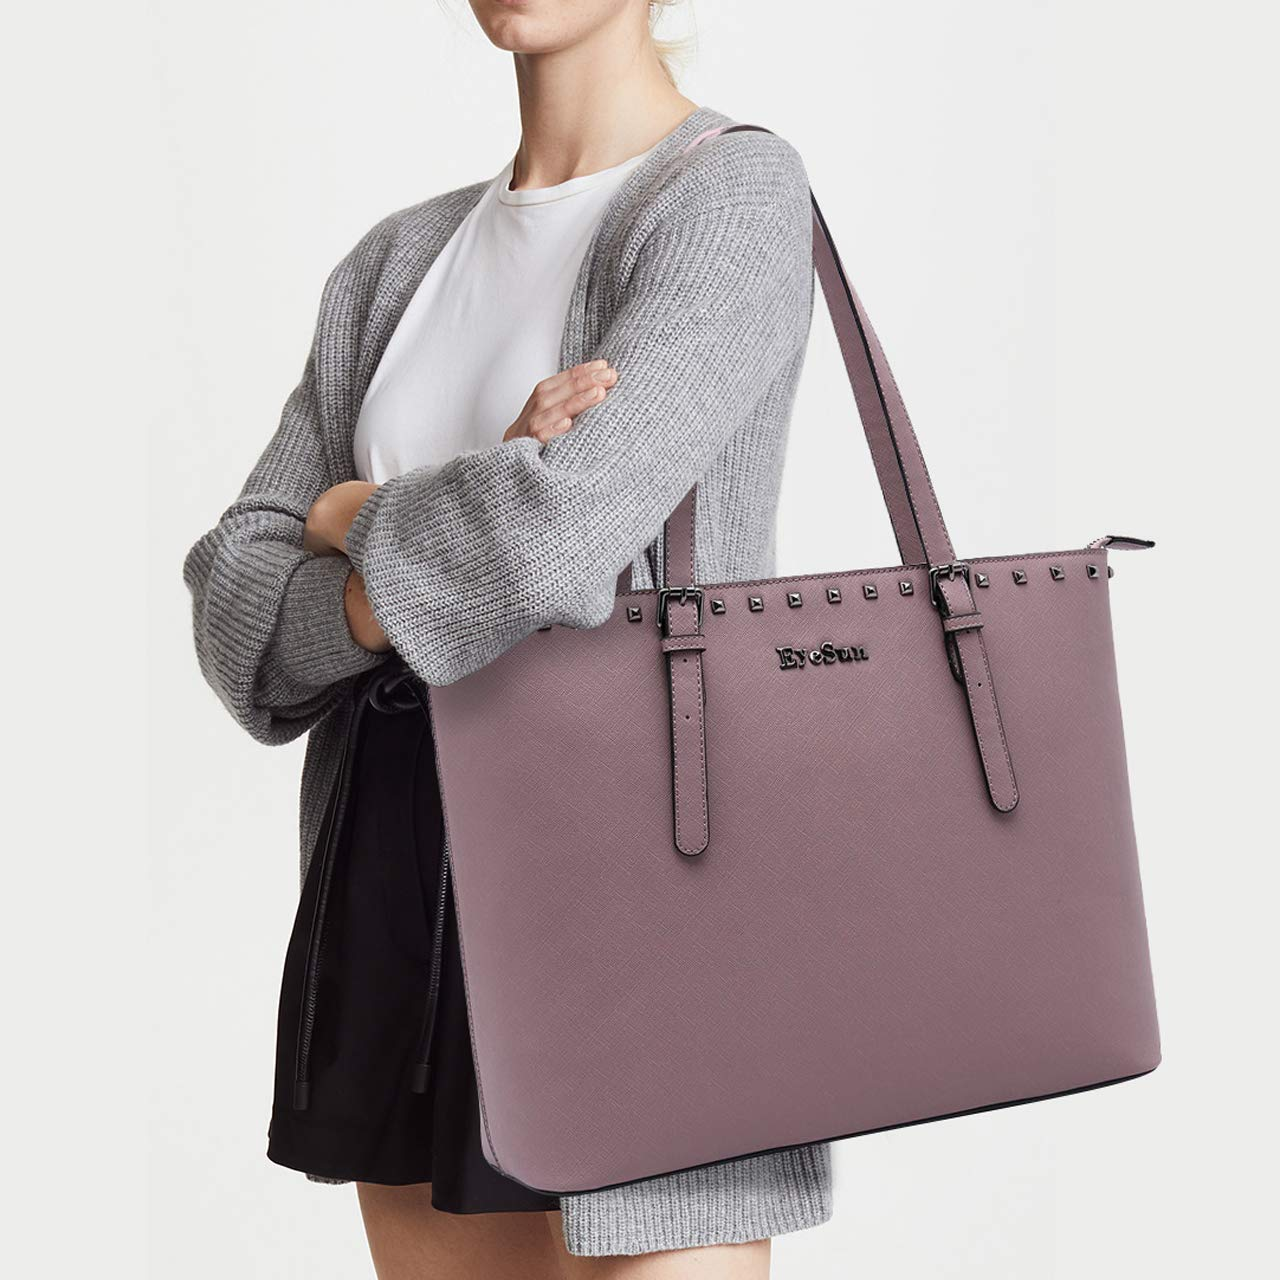 Laptop Bag for Women,15.6 Inch Laptop Tote Bag Office Briefcase with Adjustable Strap and Rivets(2013-purple) by EyeSun (Image #2)